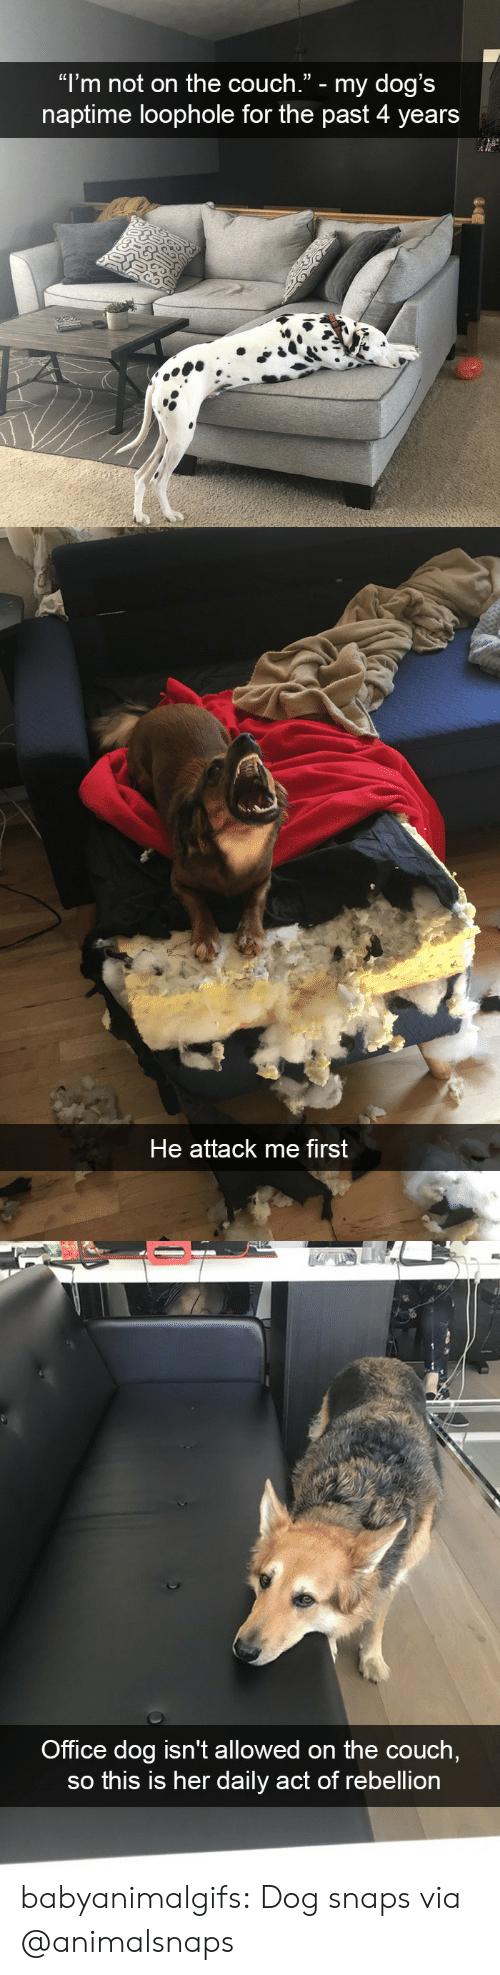 "Dogs, Tumblr, and Blog: ""l'm not on the couch."" - my dog's  naptime loophole for the past 4 years   He attack me first   Office dog isn't allowed on the couch  so this is her daily act of rebellion babyanimalgifs: Dog snaps via @animalsnaps"